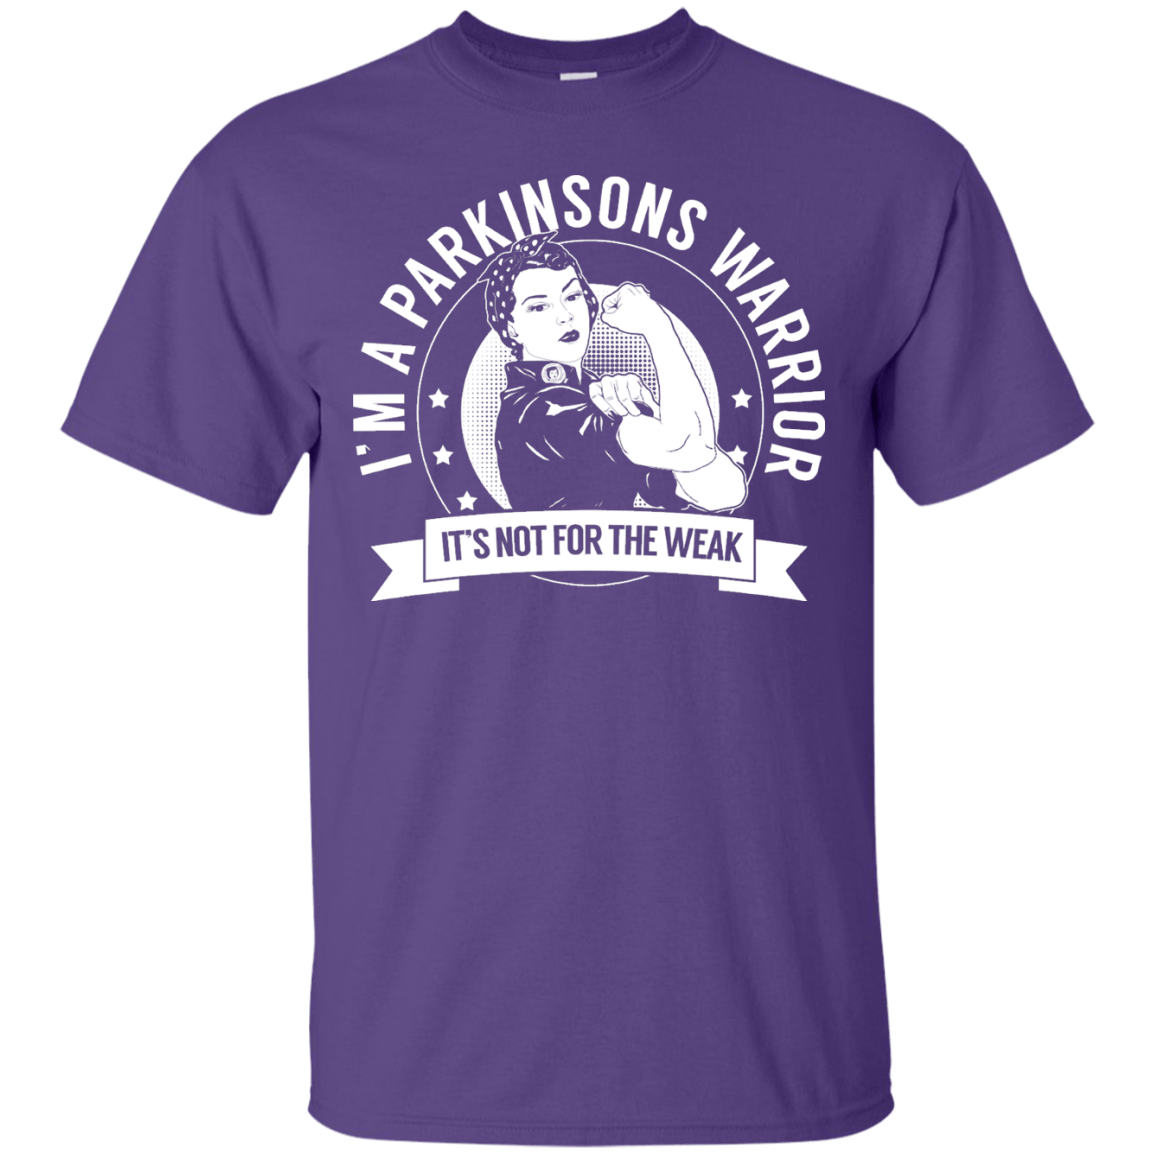 Parkinsons Warrior Not For The Weak Unisex Shirt - The Unchargeables